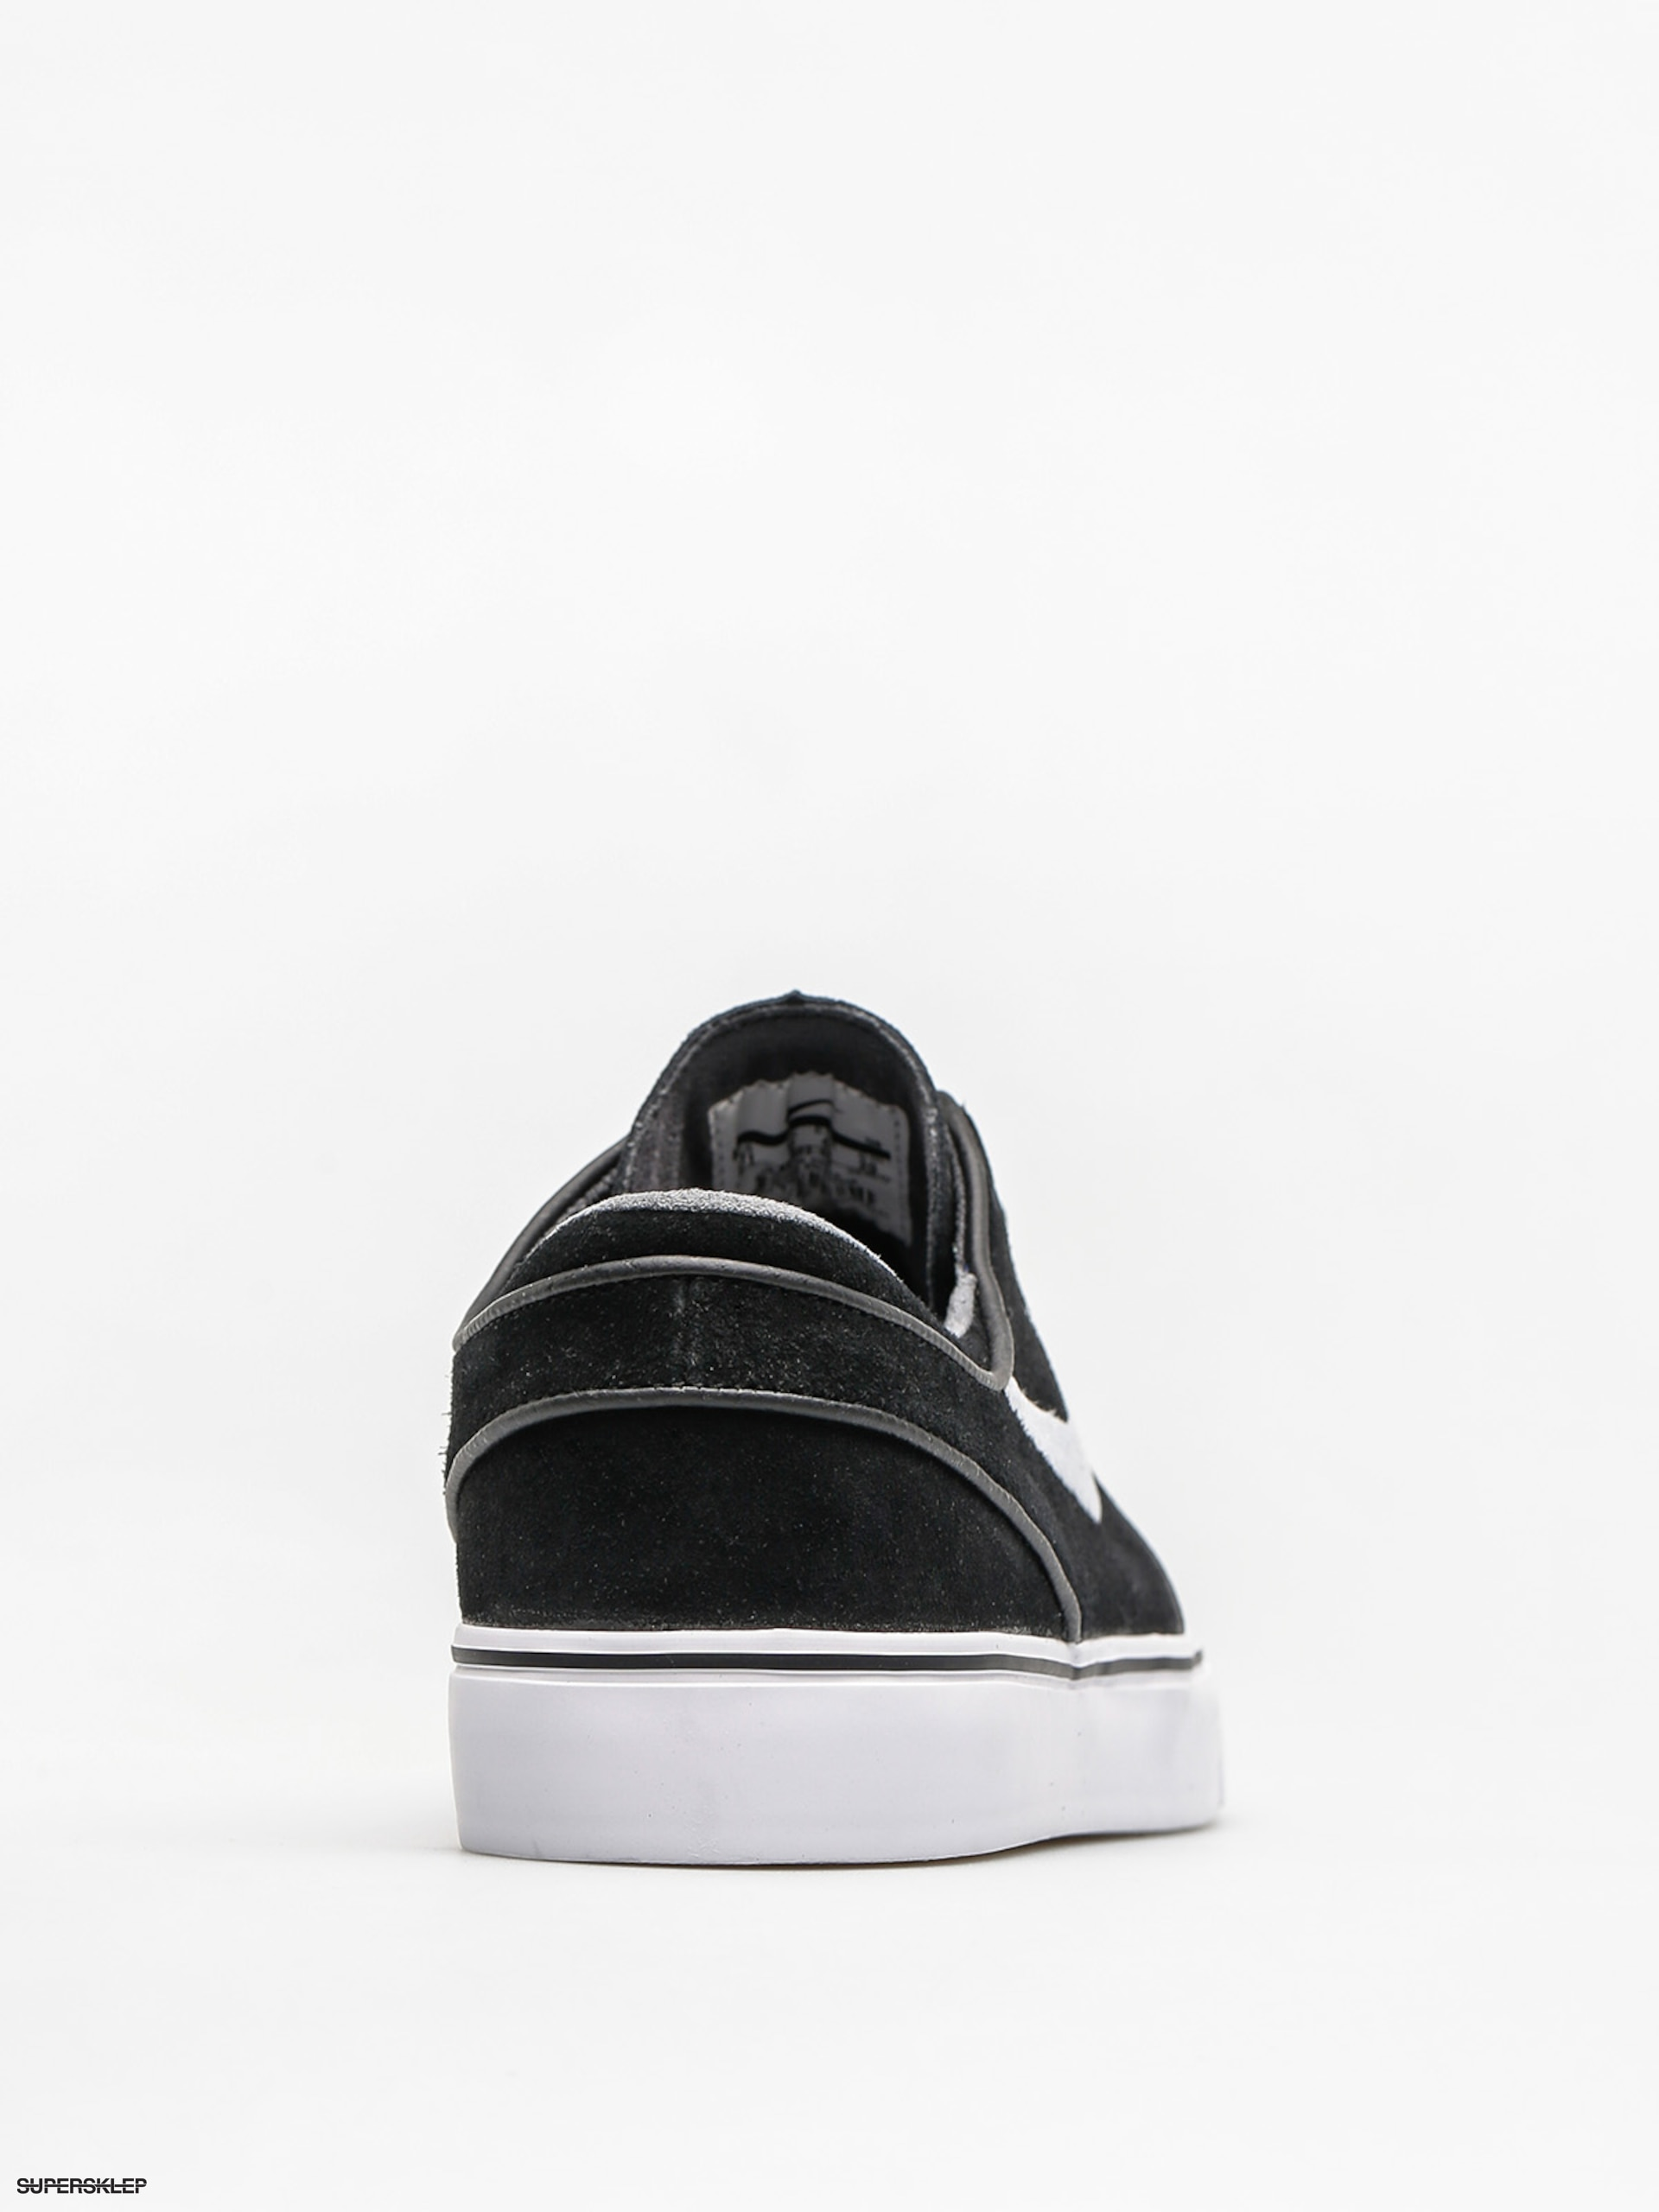 innovative design 33d4d 0eb8a Nike SB Boty Zoom Stefan Janoski Og (black white gum light brown)